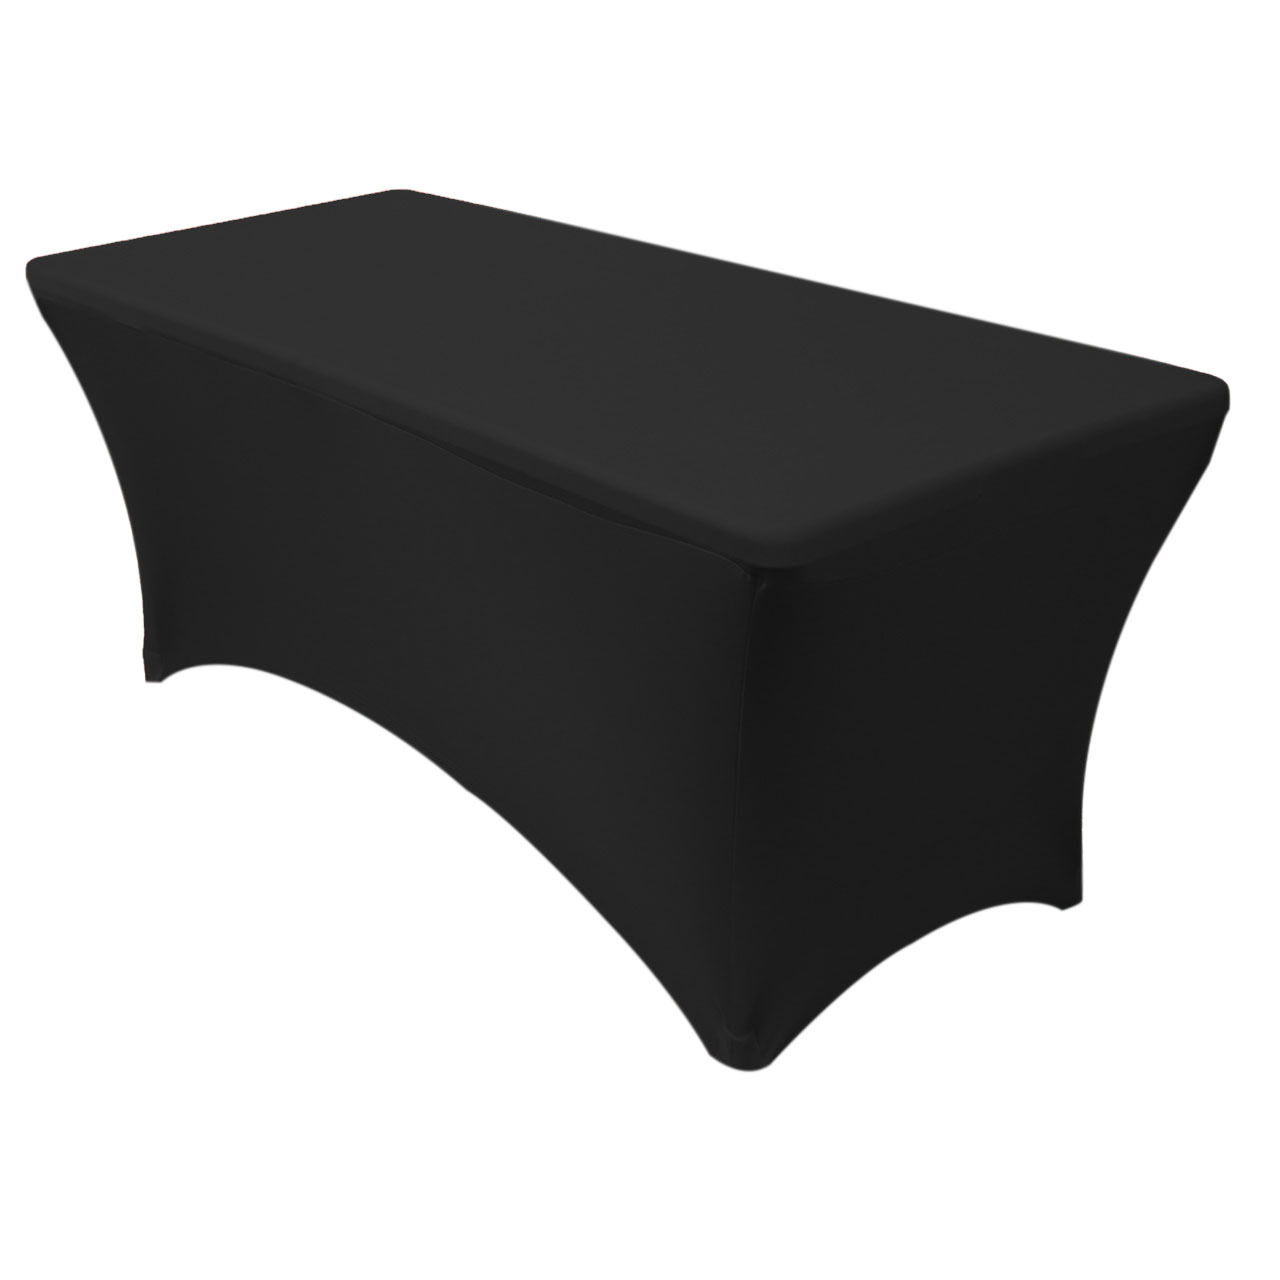 stretch spandex 6 ft rectangular table cover black your chair covers inc. Black Bedroom Furniture Sets. Home Design Ideas